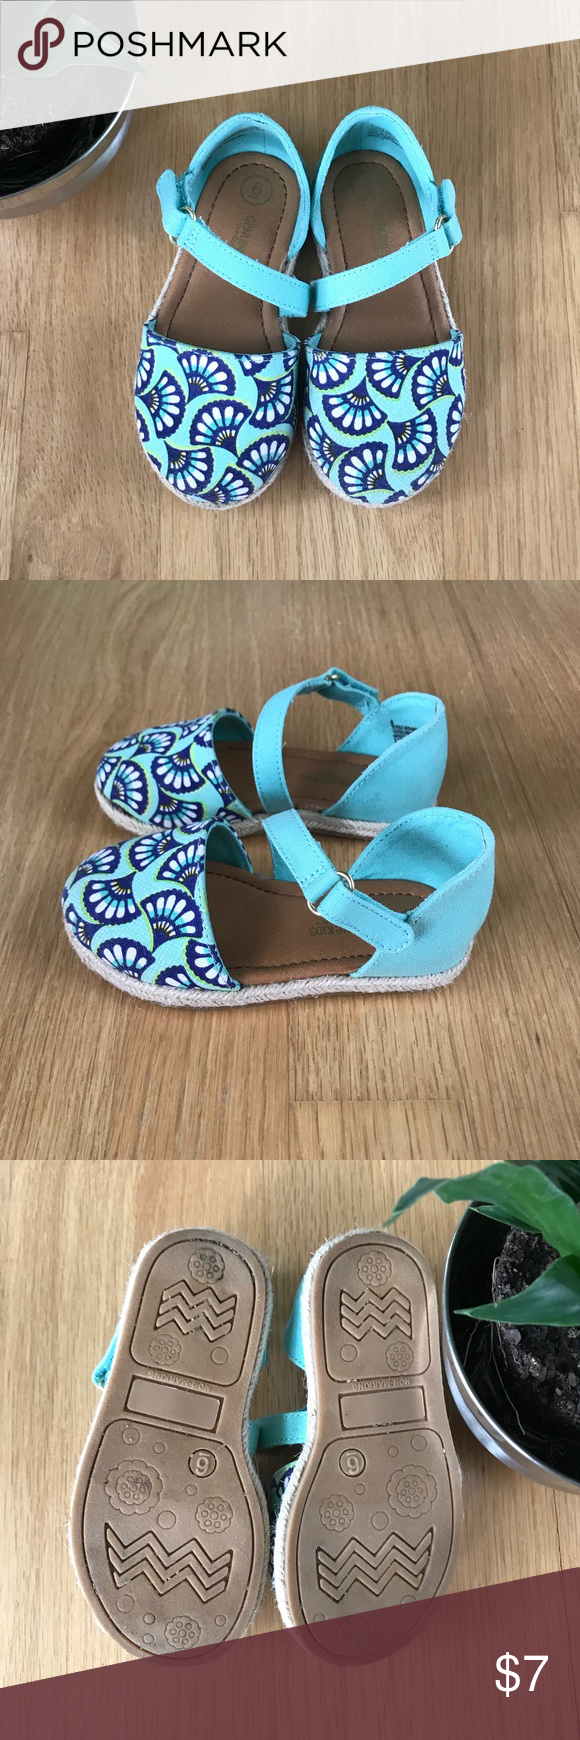 "d97e7431fd06d1 Genuine Kids Canvas Espadrilles Sz. 6 Super cute shoes! Genuine Kids from  OshKosh ""Keyla"" sandals. Fun blue green floral fan print. Excellent  condition."